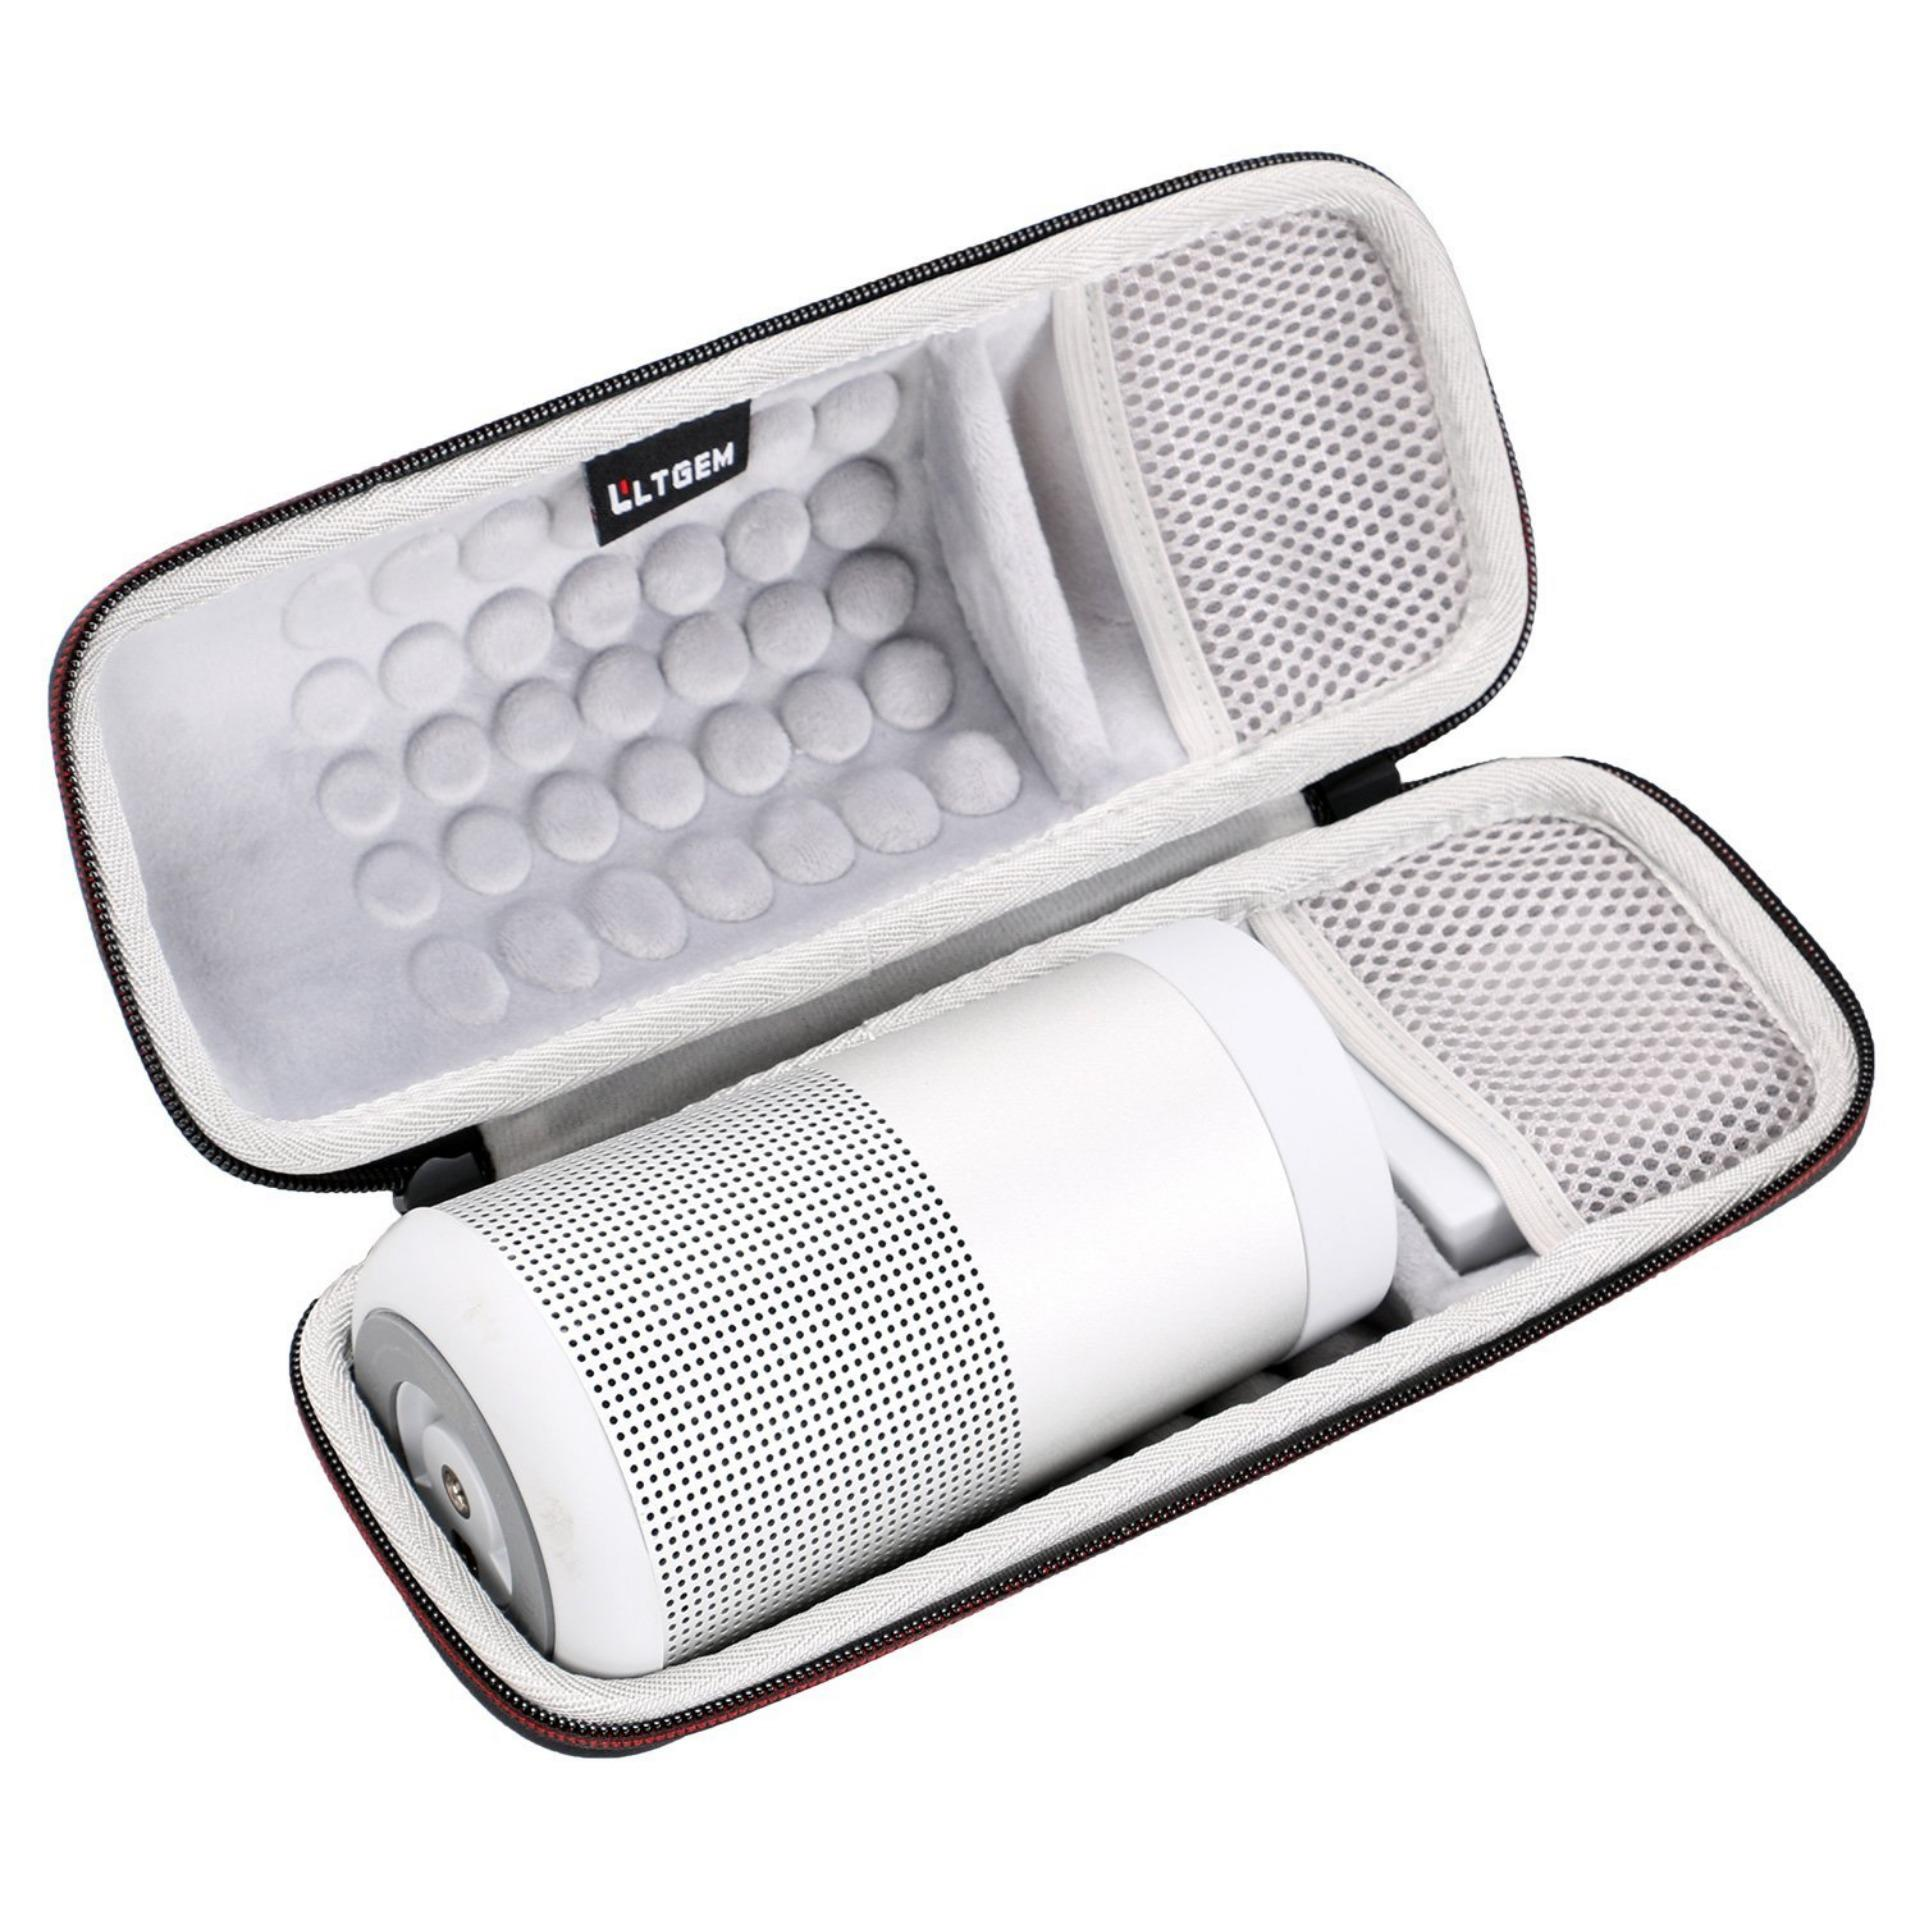 Buy Ltgem Portable Hard Eva Case Protective Storage Carrying Bag Case For Revolve Bluetooth Speaker With Mesh Pocket Intl China